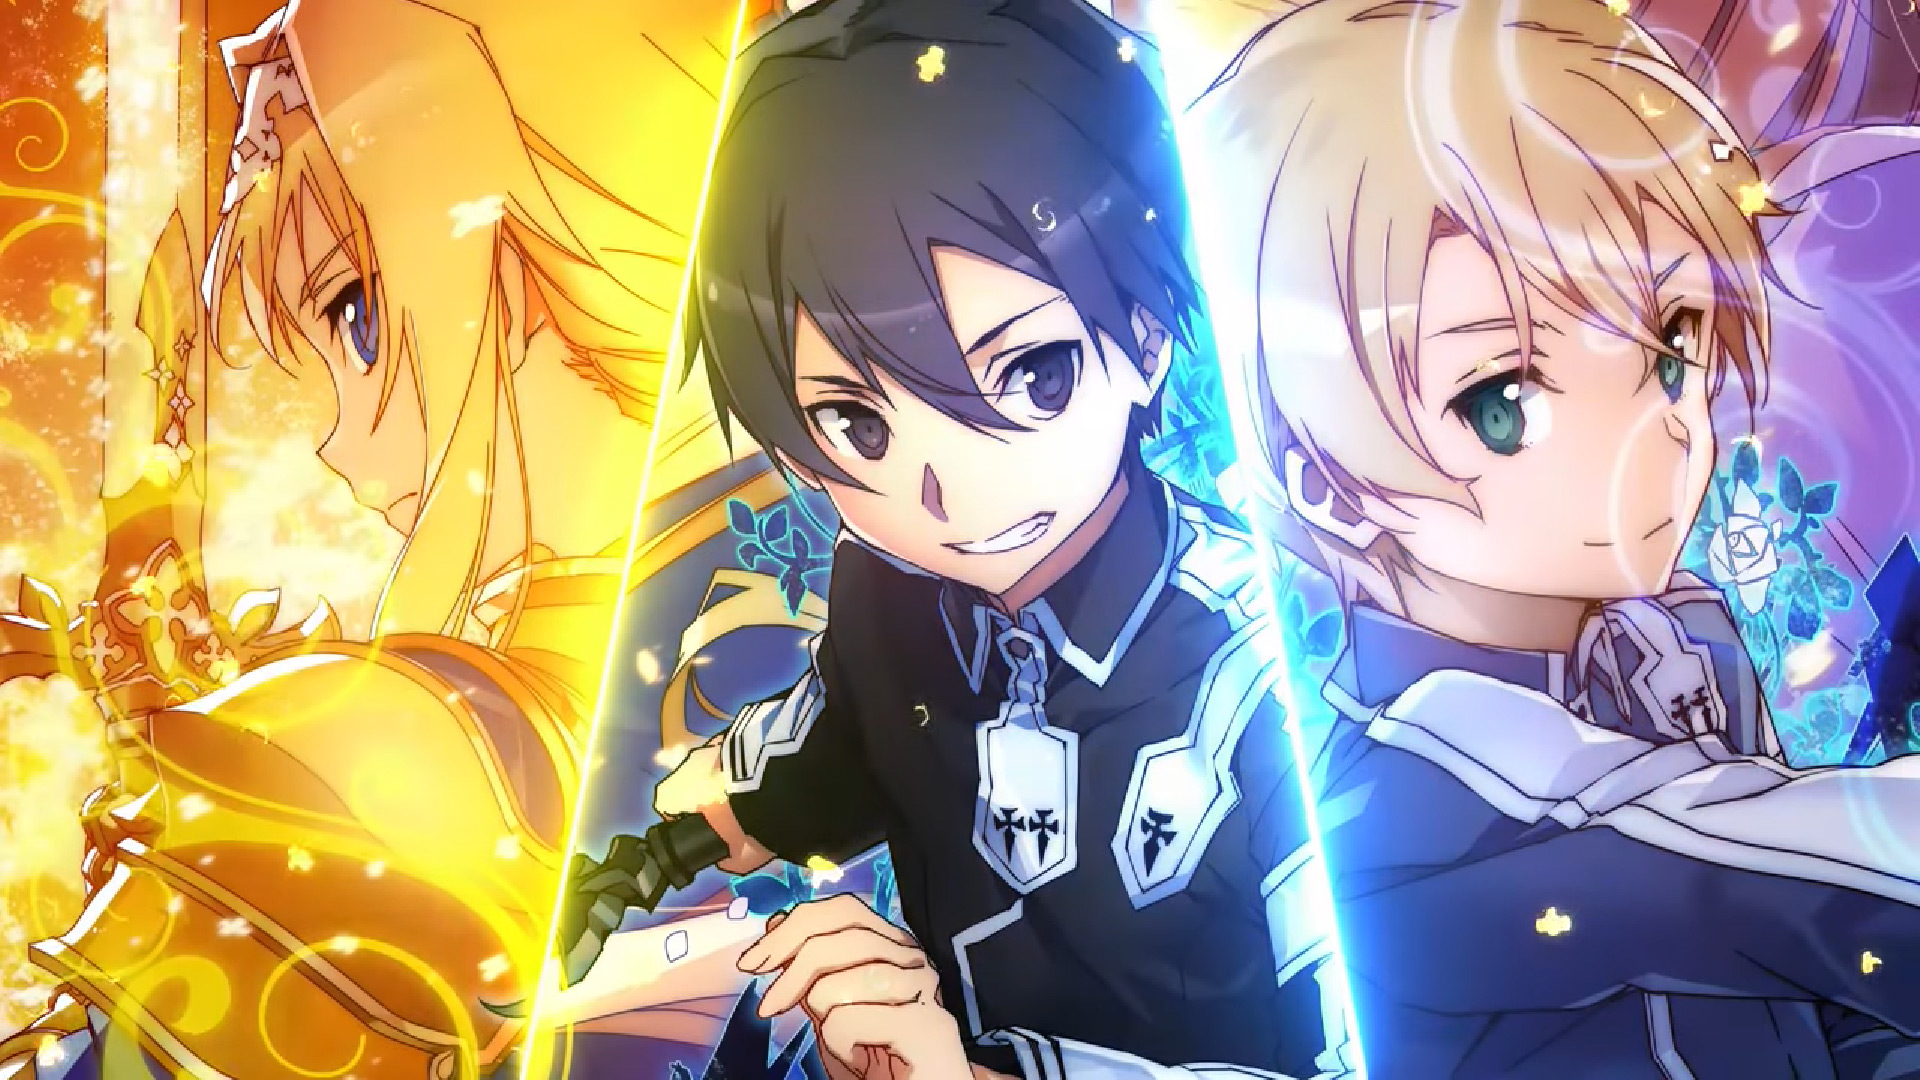 Sword Art Online Alicization Countdown How Many Days Until The Next Episode